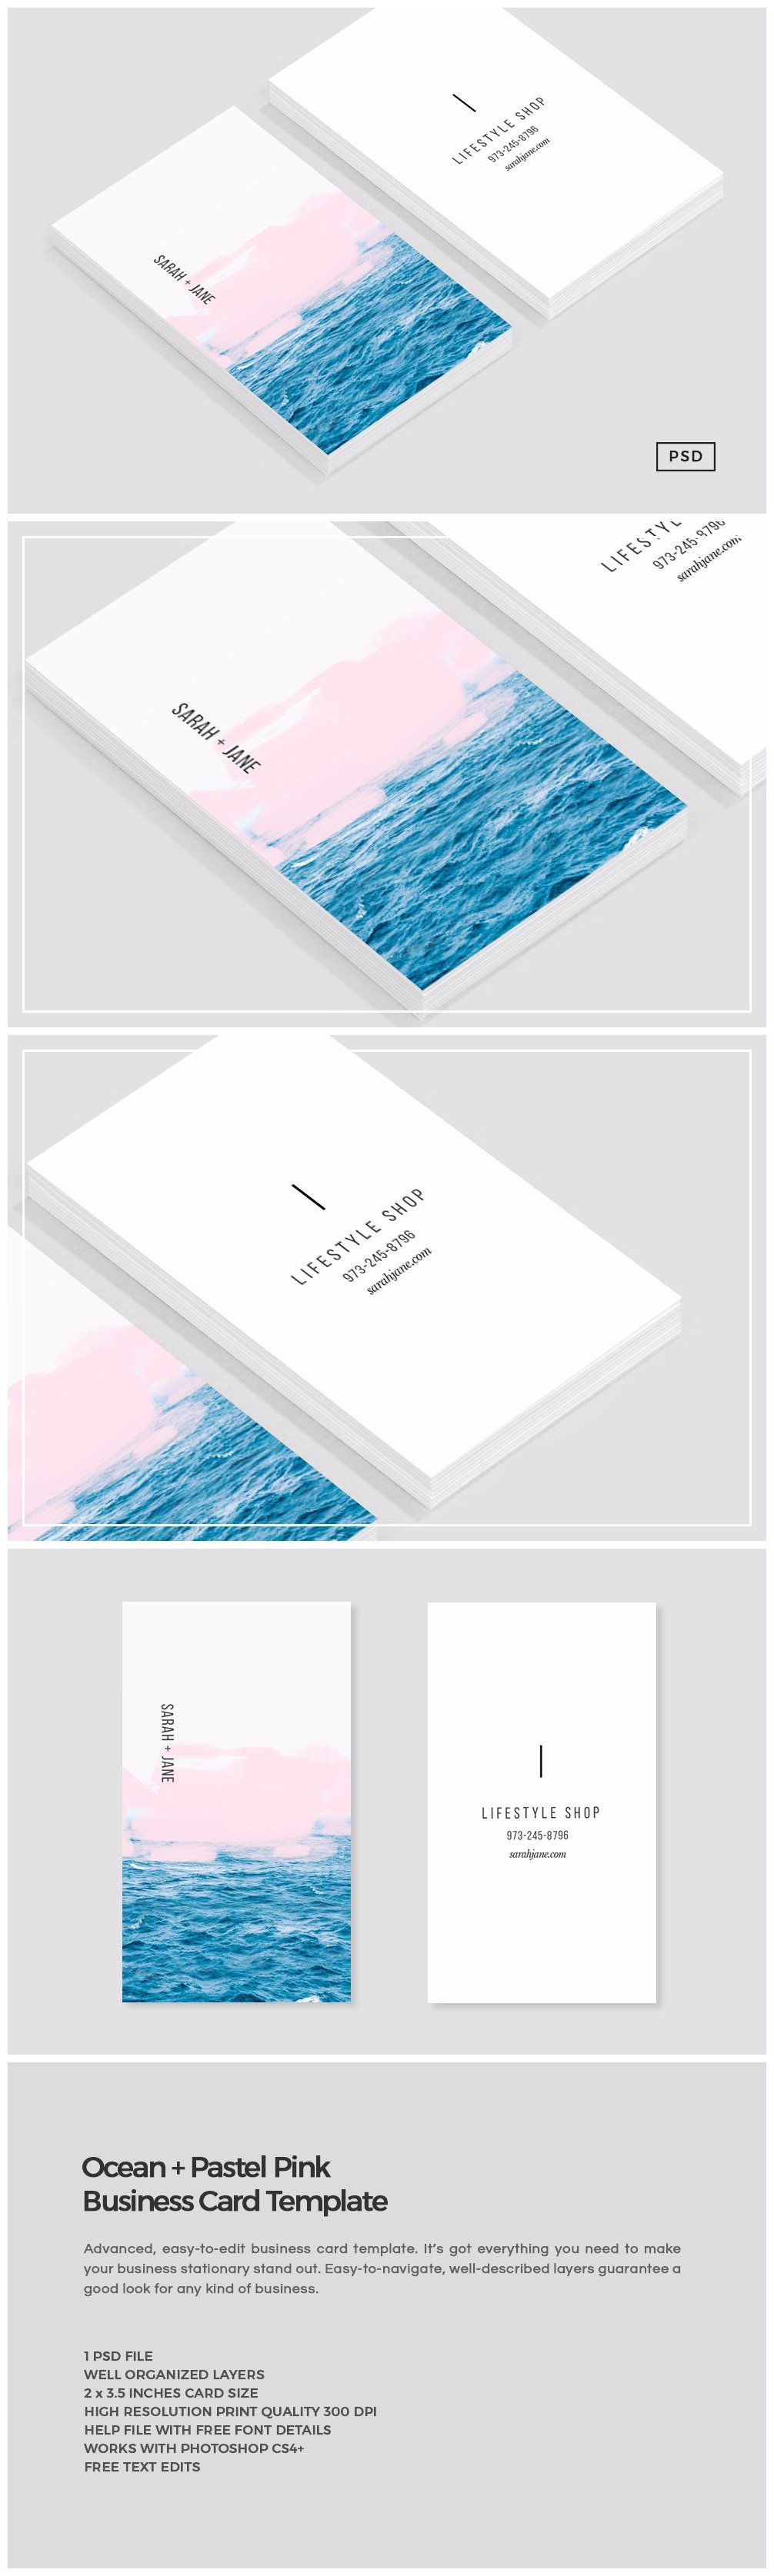 Ocean pink business card template business card templates ocean pink business card template business card templates creative market reheart